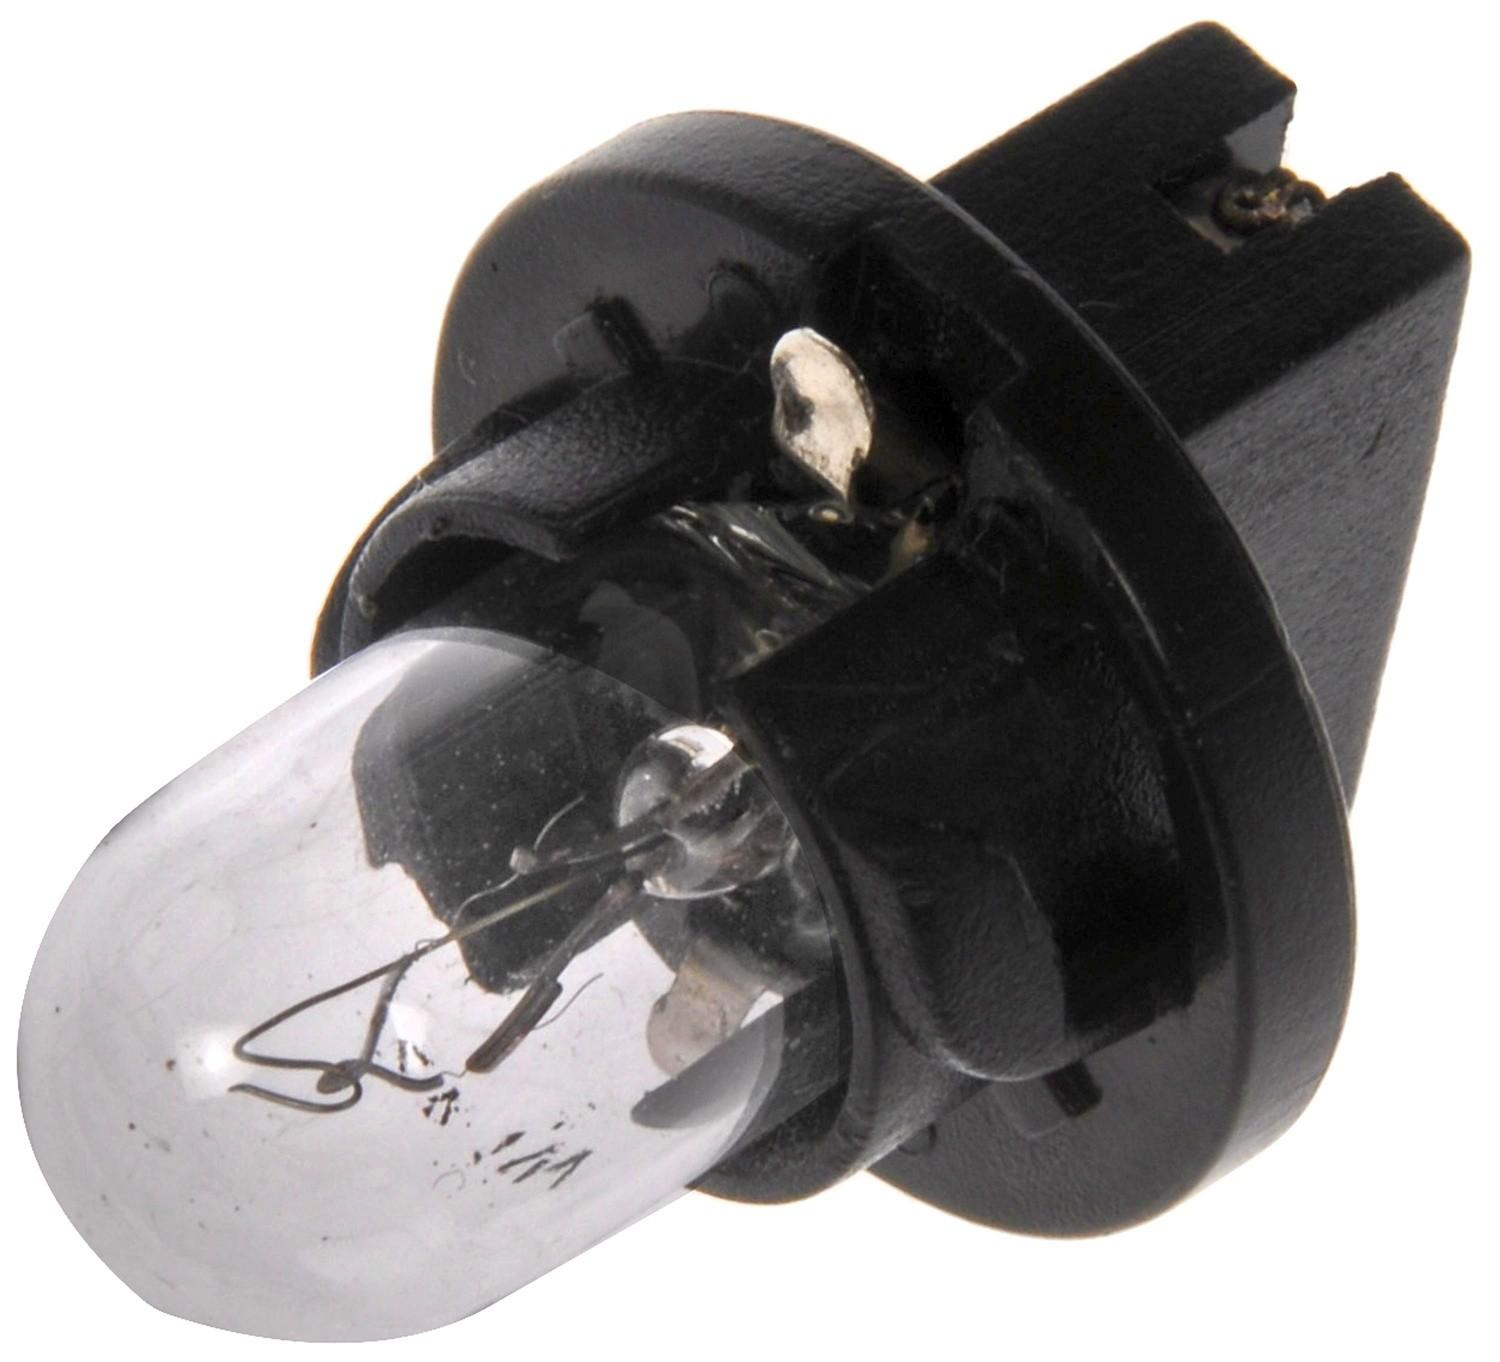 DORMAN OE SOLUTIONS - Instrument Panel Light Bulb - DRE 639-046